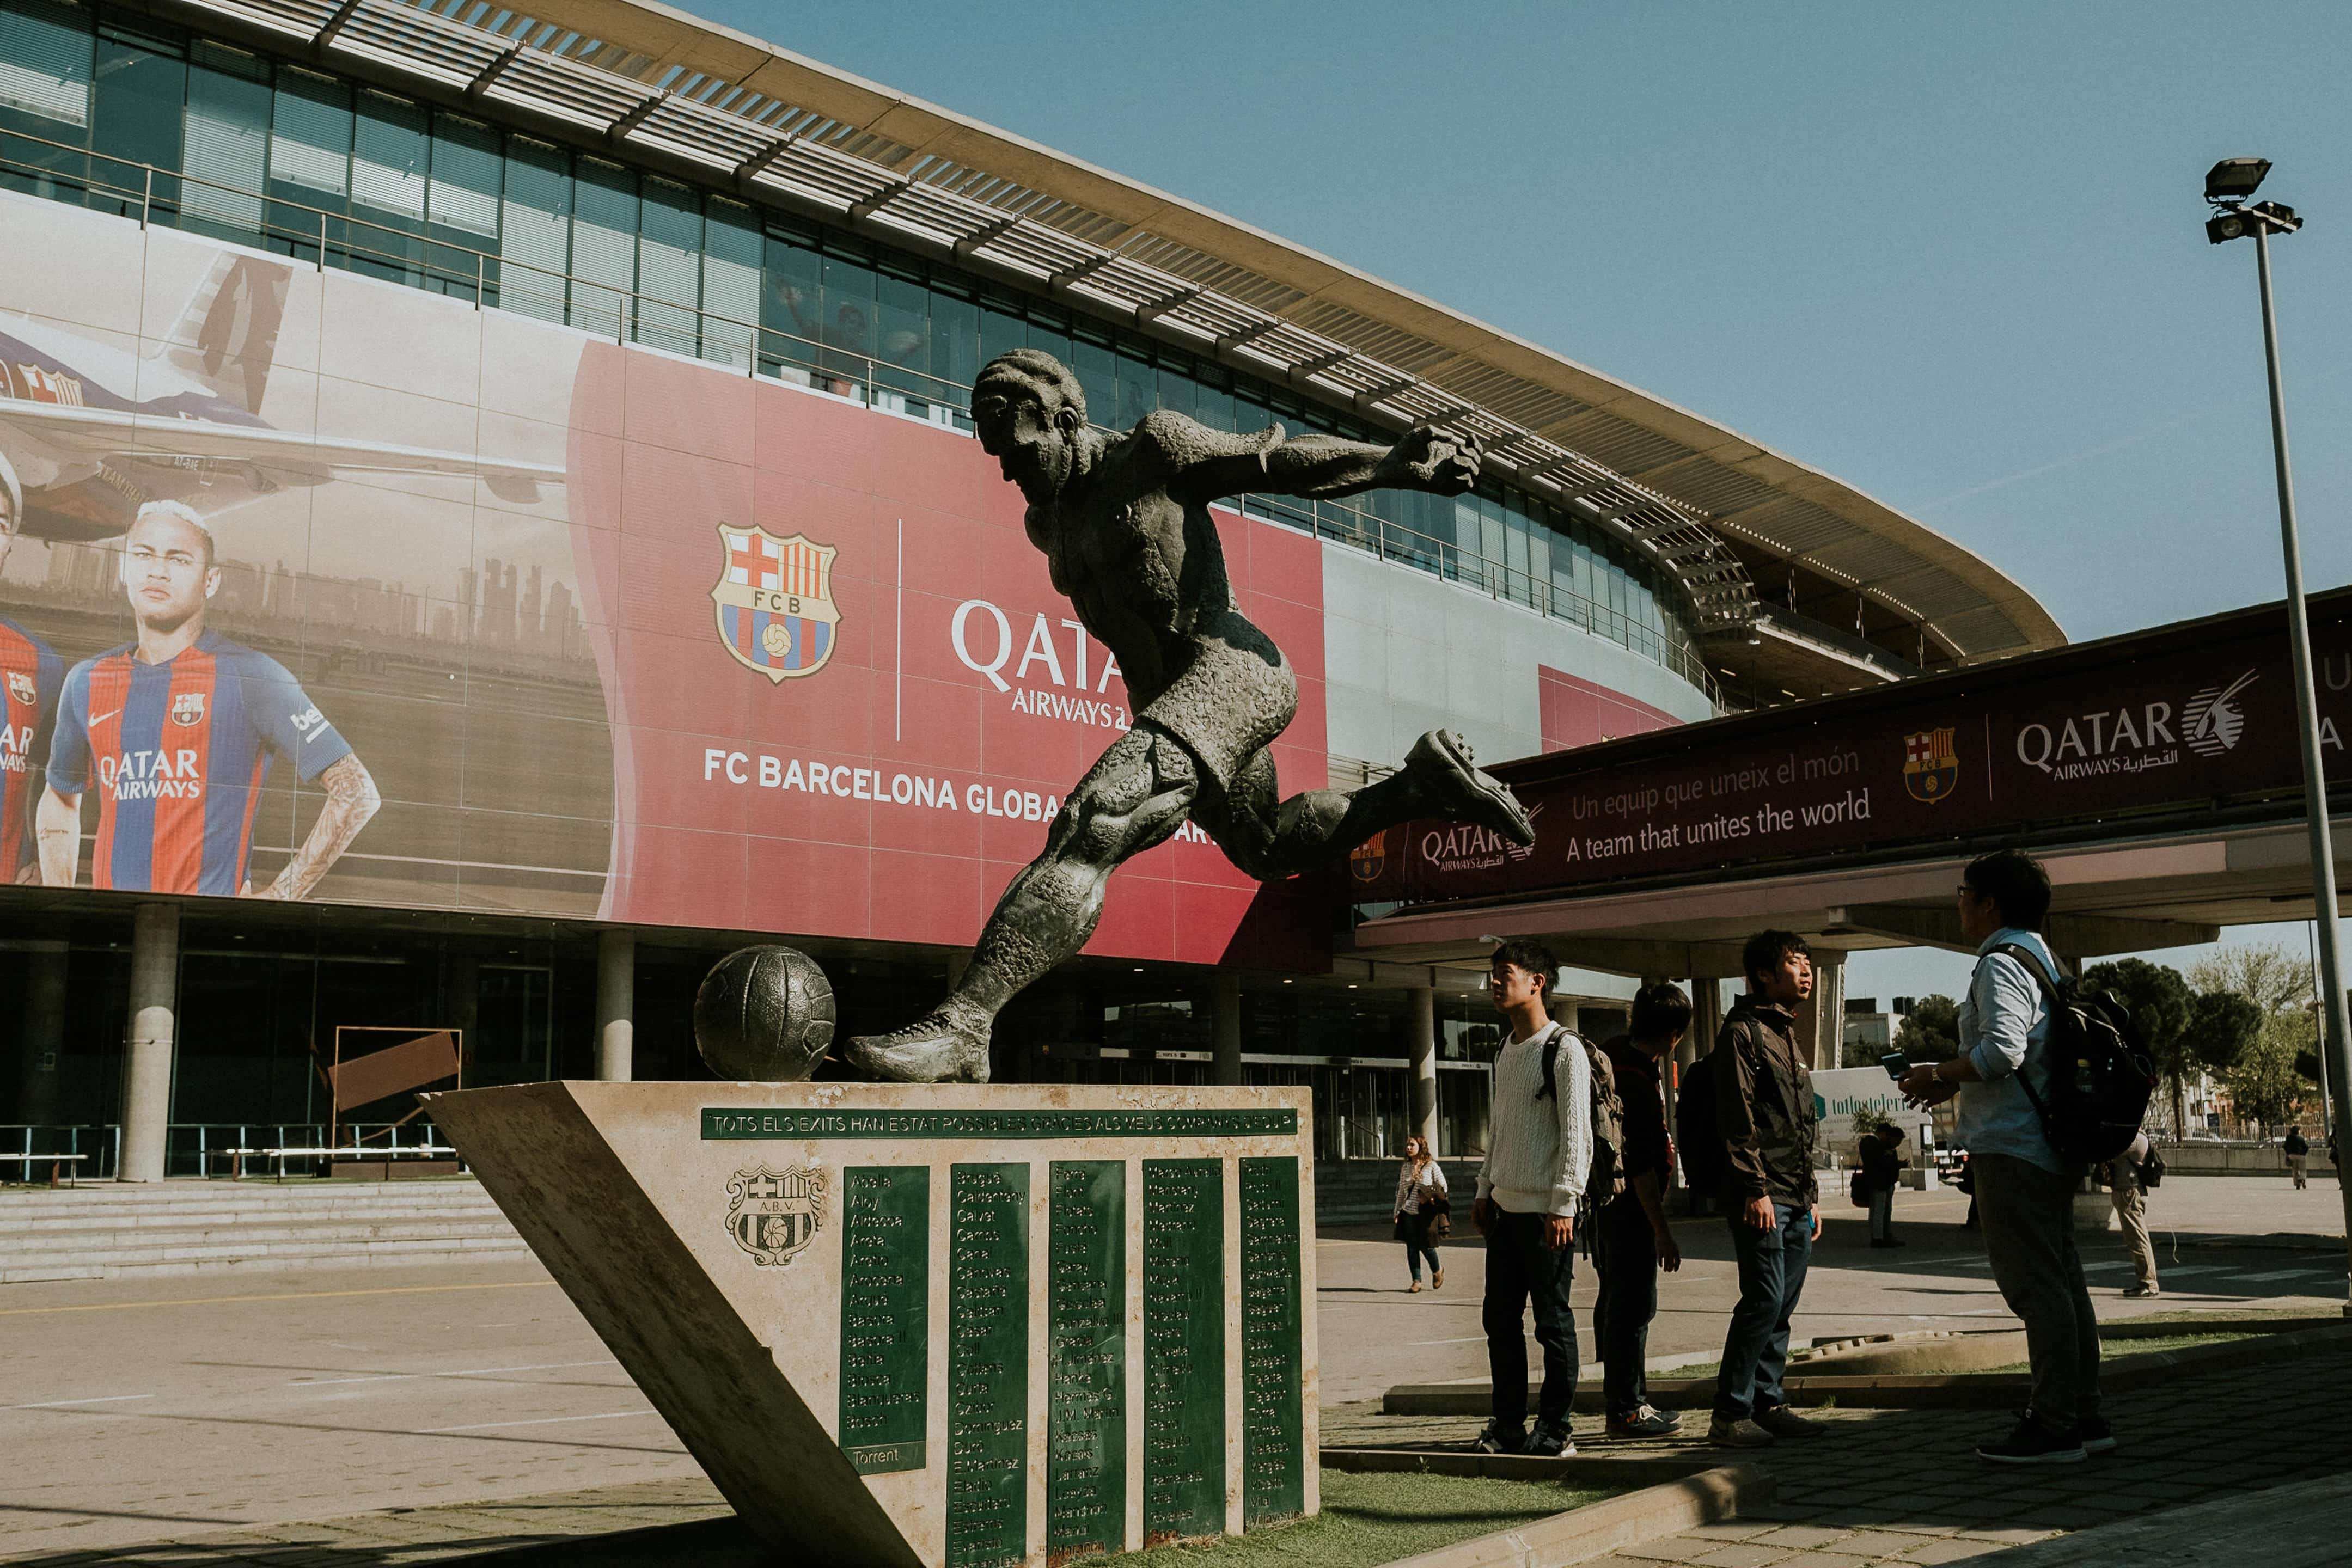 Statue outside Camp Nou, Barcelona